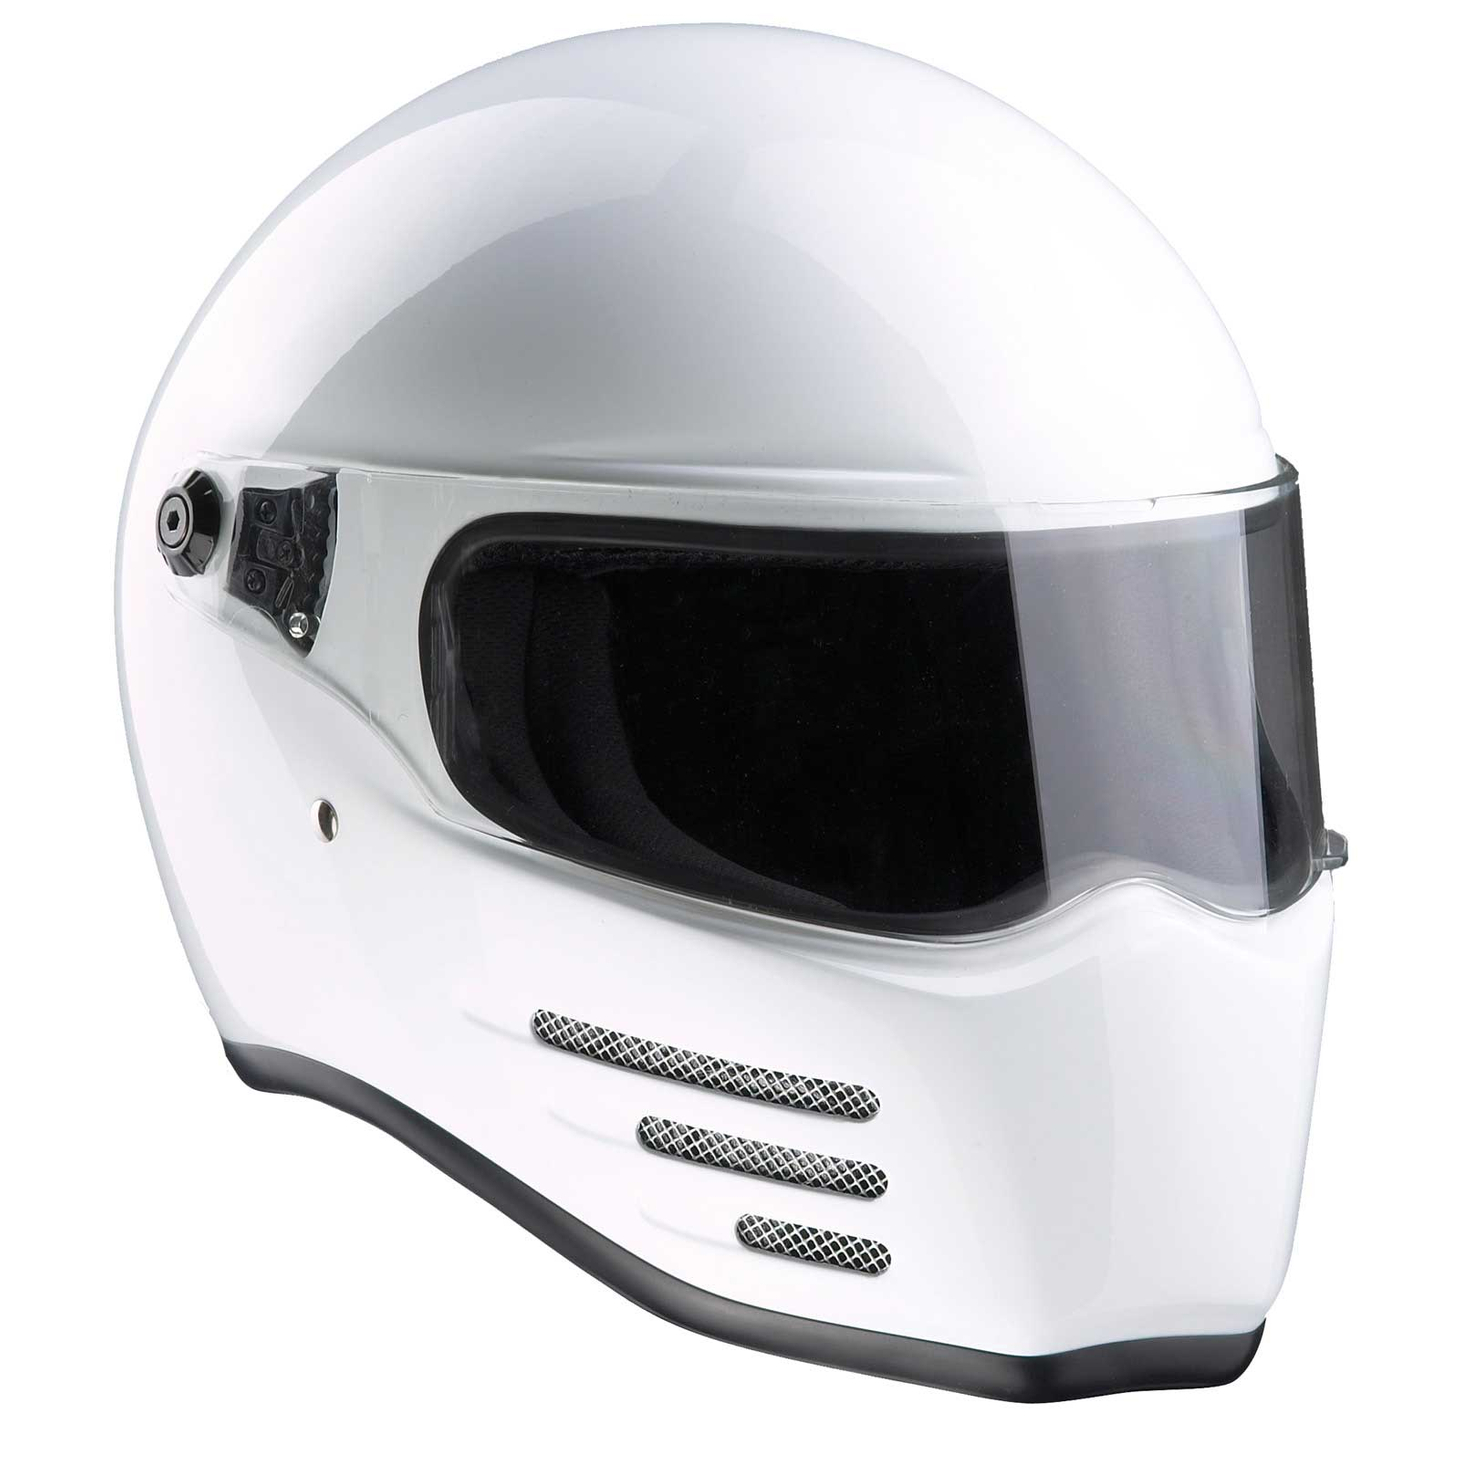 Bandit - Fighter Helmet - for Streetfighter, Mad Max - Fibreglass – Picture 3